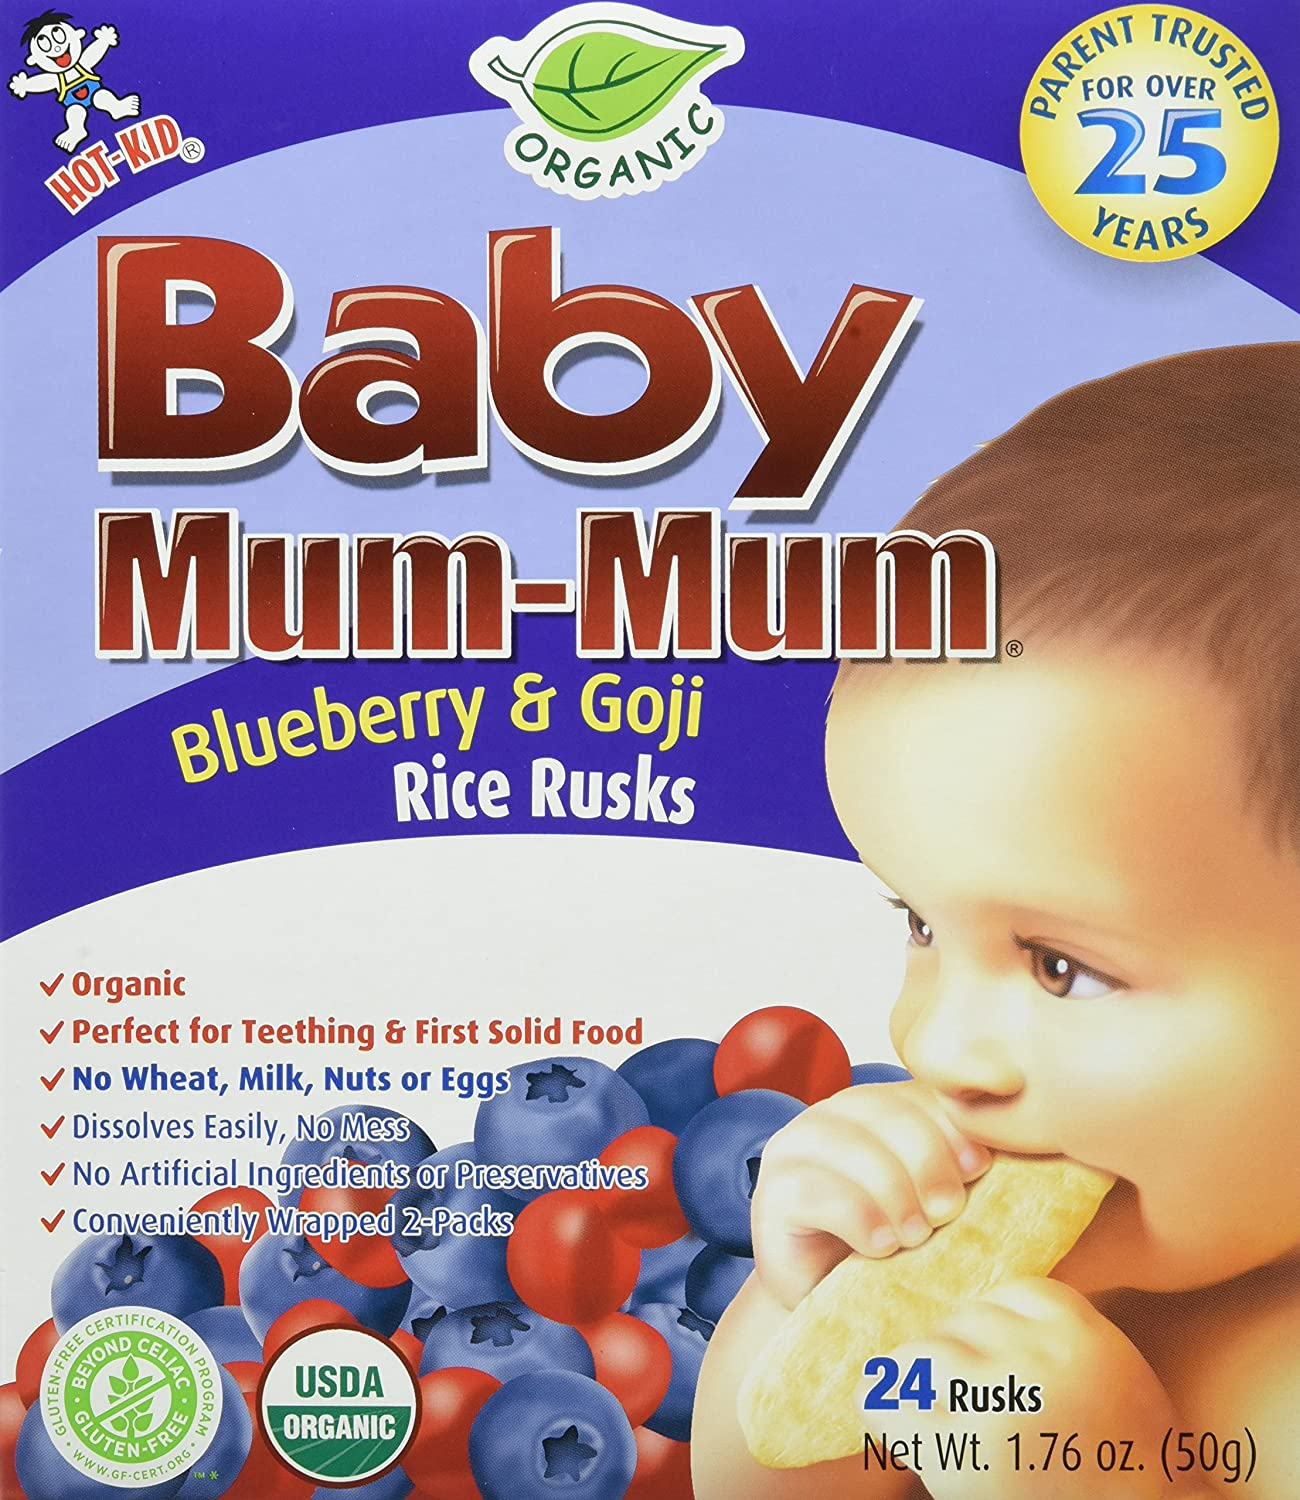 Hot Kid - Baby Mum Mum Organic Rice Rusks Teething Snacks Original - 24 Count